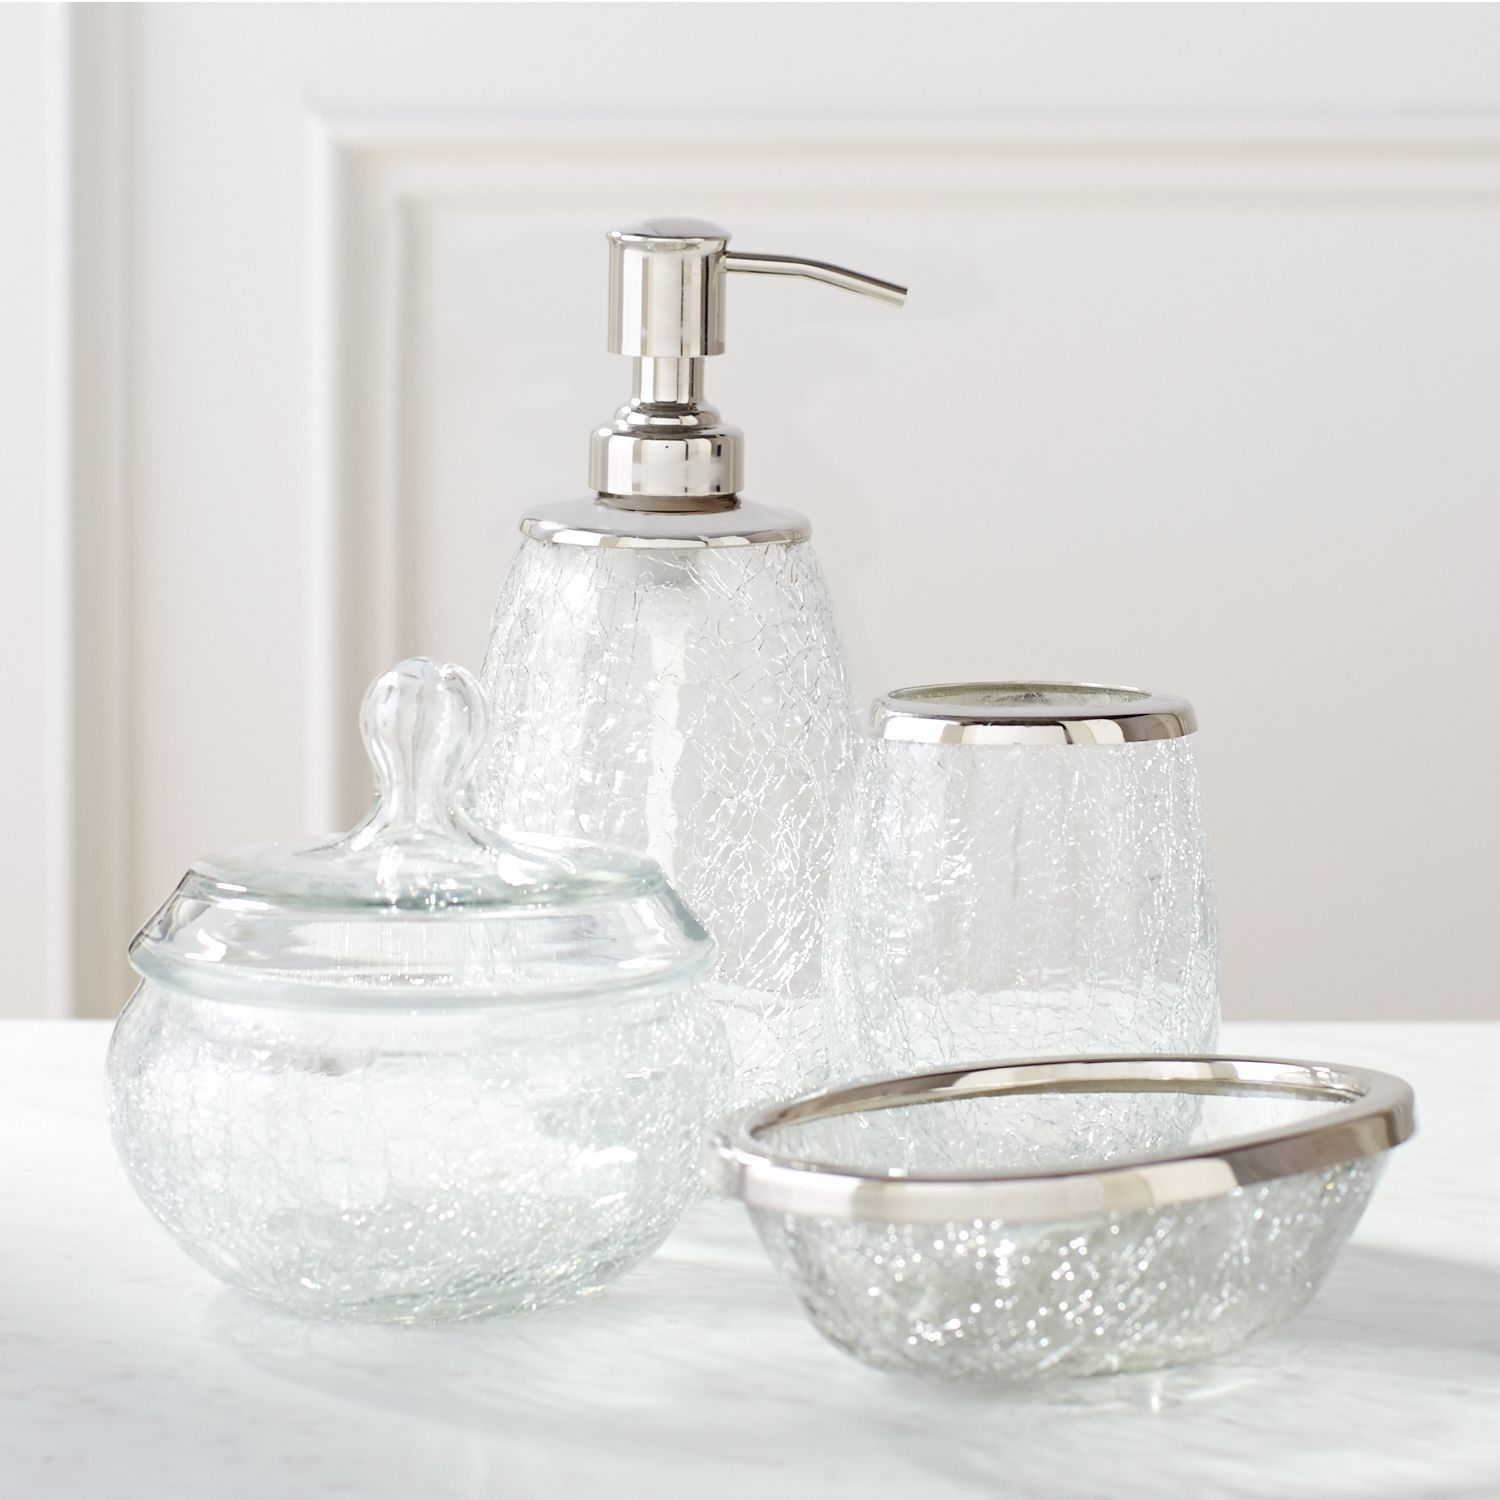 accessories pin crackle and bath bathroom collection ice glass paradigm